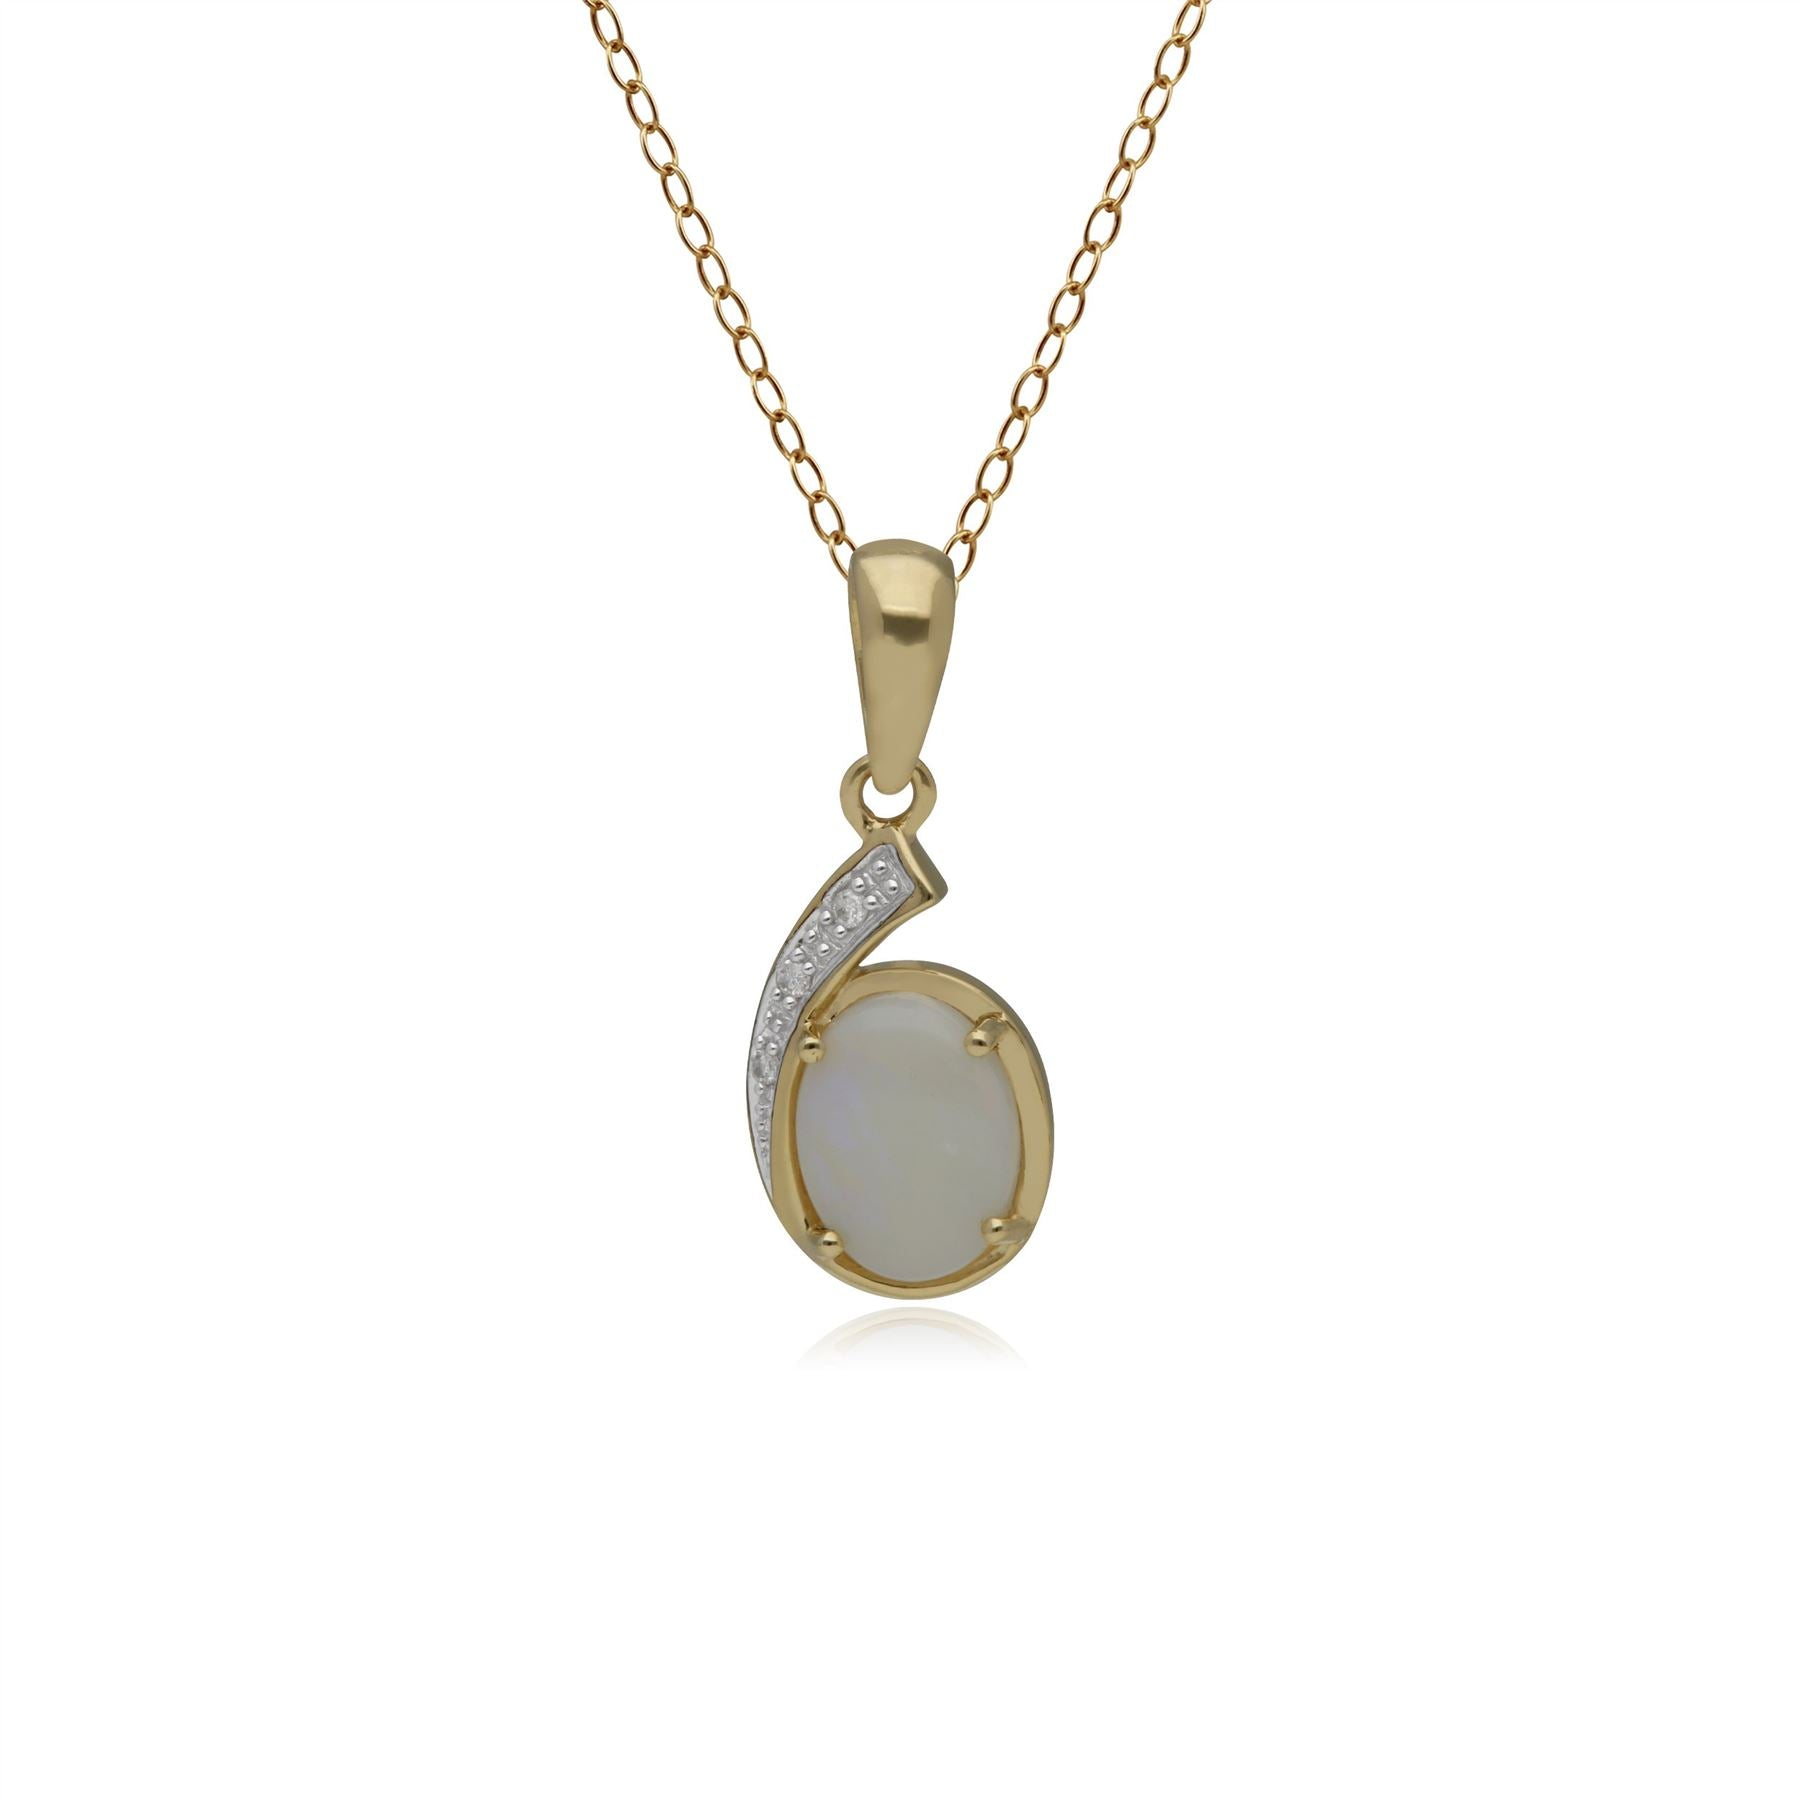 Image of  			   			  			   			  9ct Yellow Gold 0.69ct Opal & 1.5pt Diamond Classic Pendant on 45cm Chain